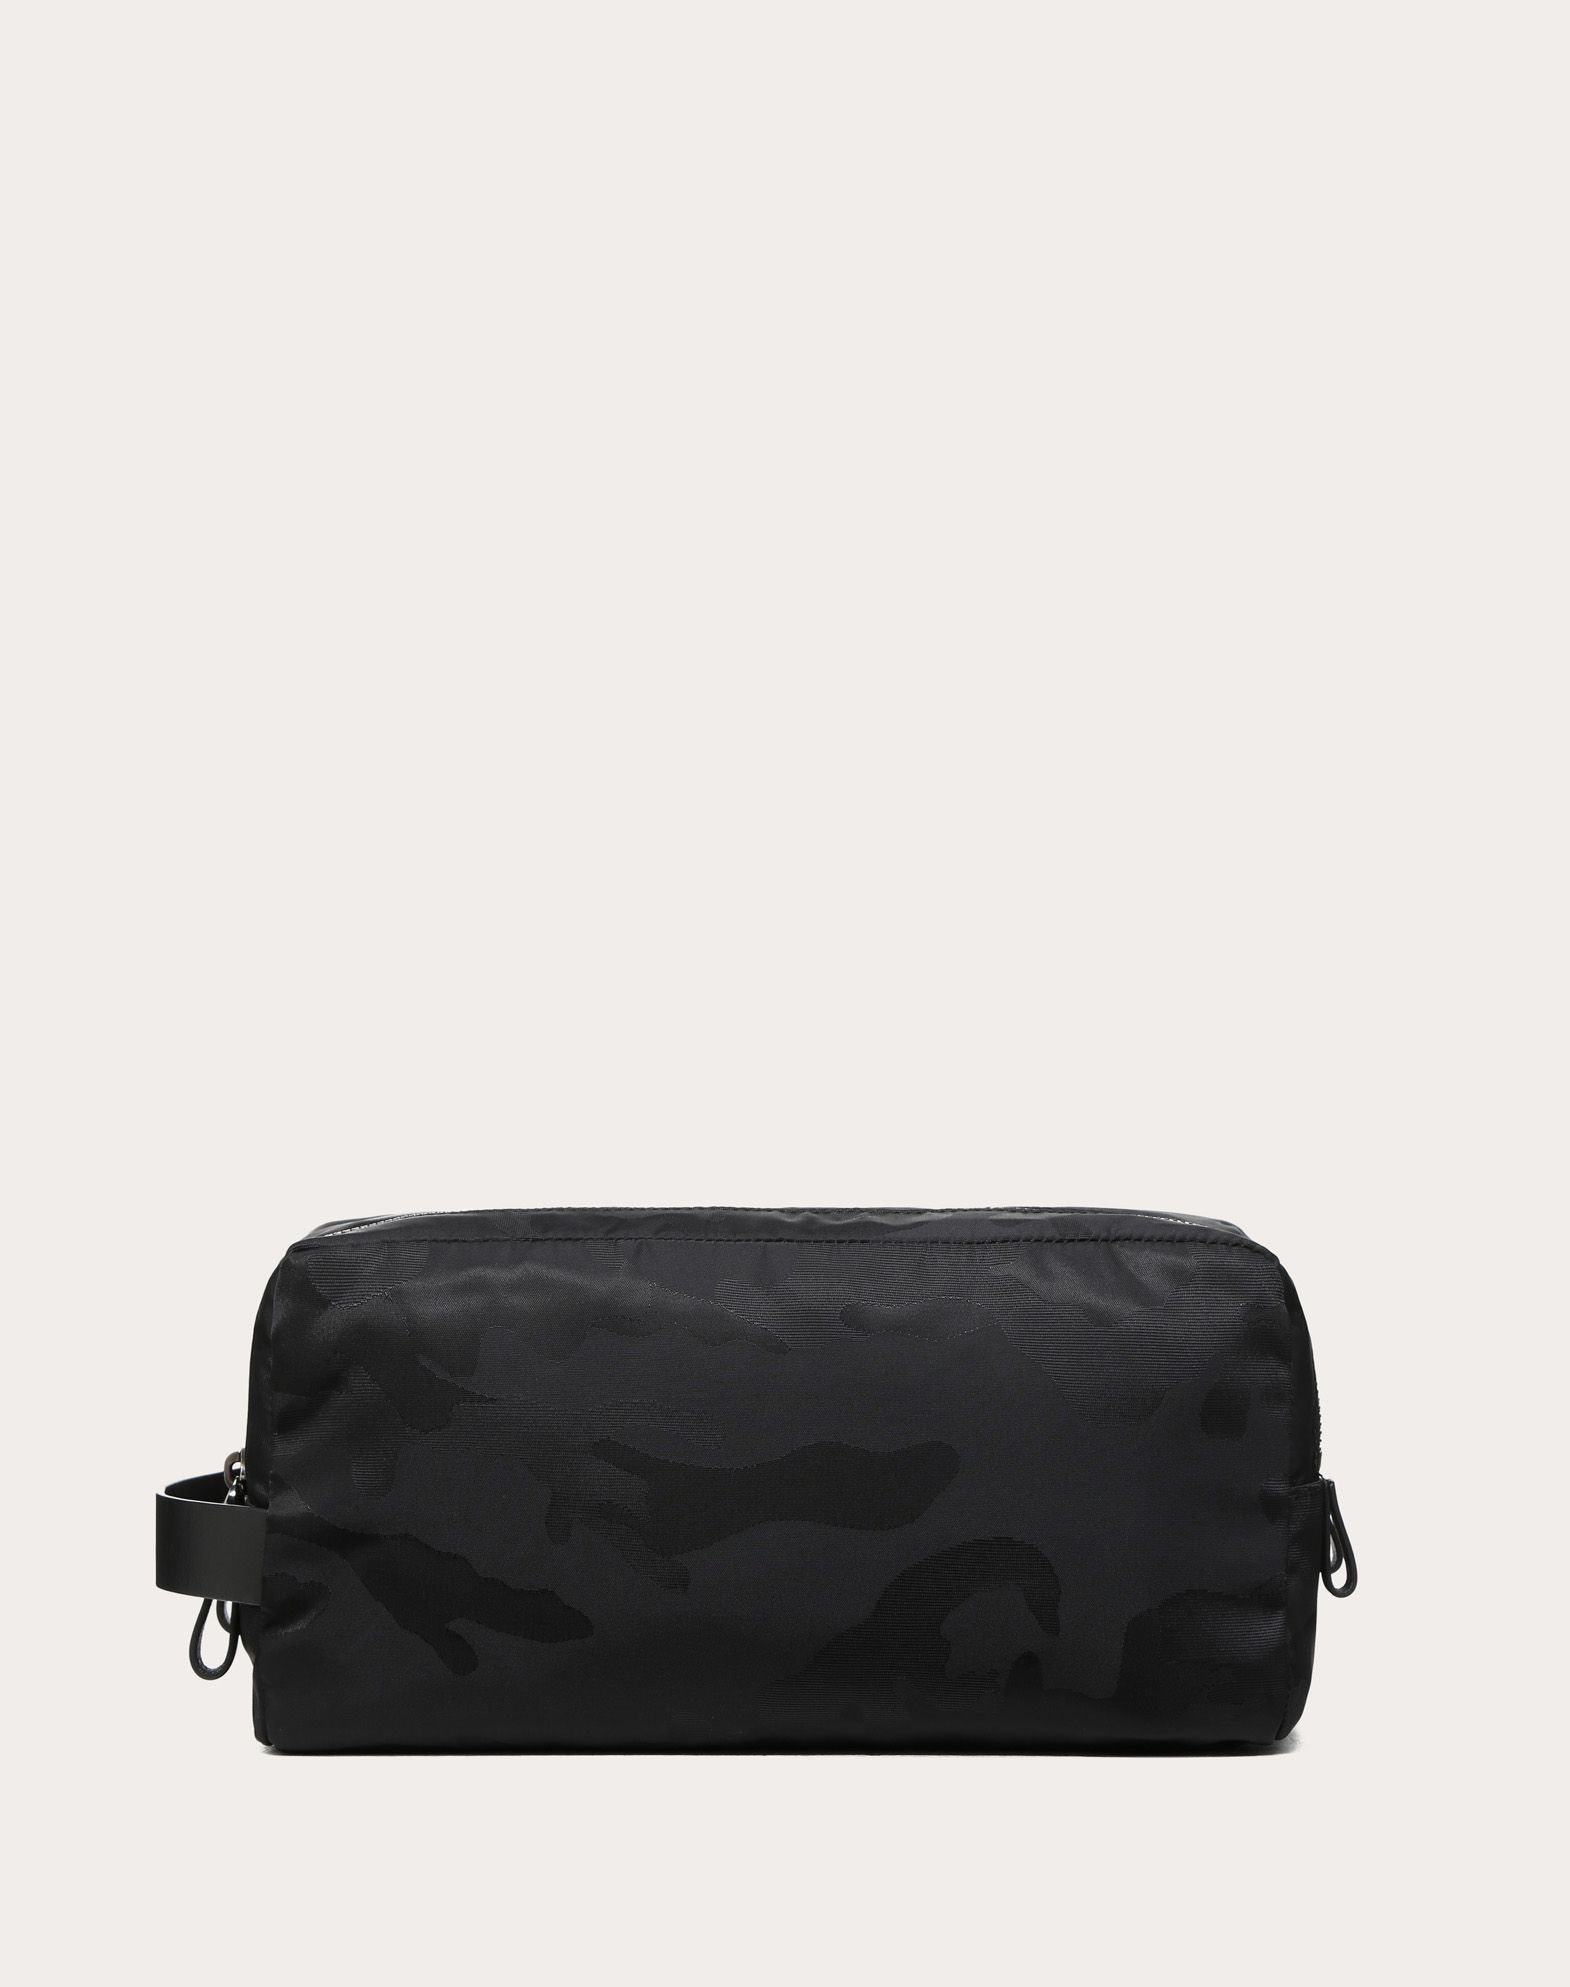 Camouflage Toiletry Case